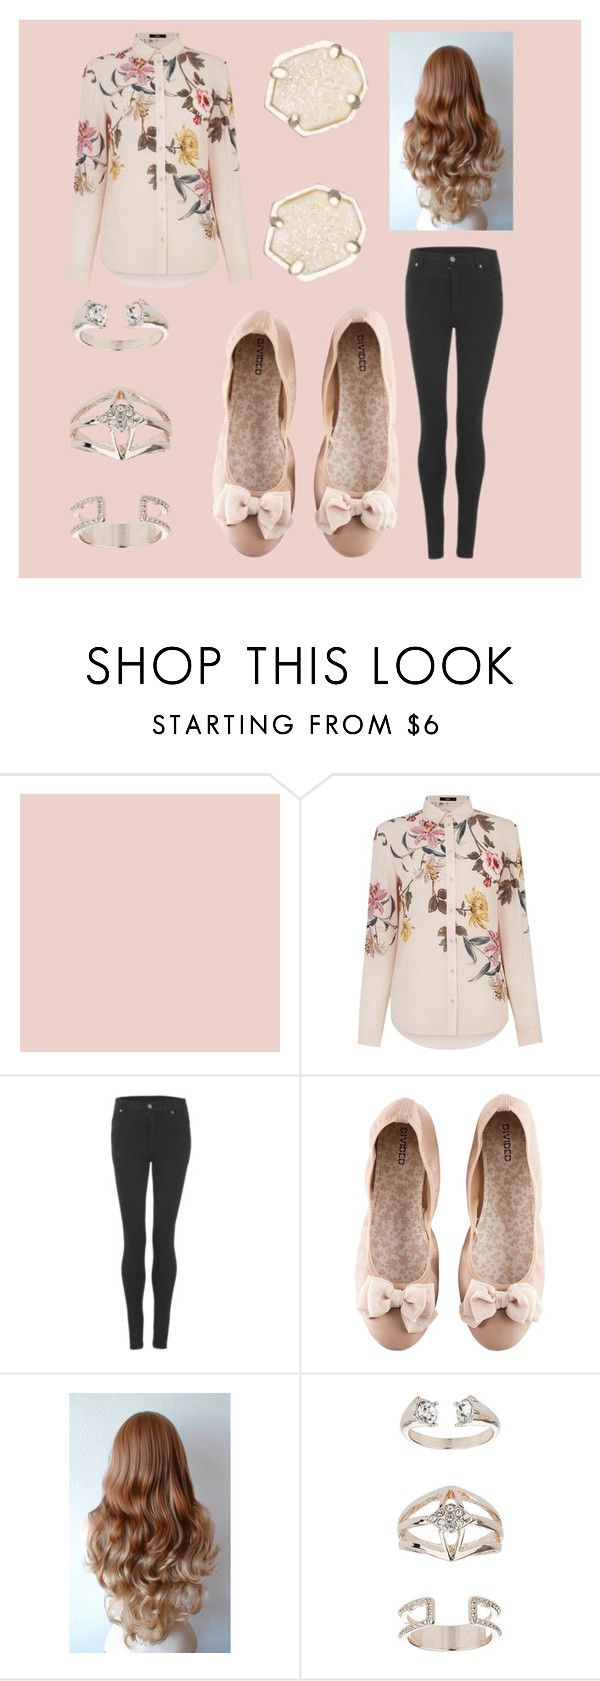 """""""Simple But Classy """" by savage-cabbage ❤ liked on Polyvore featuring Oasis, Cheap Monday, H&M, Topshop and Kendra Scott"""